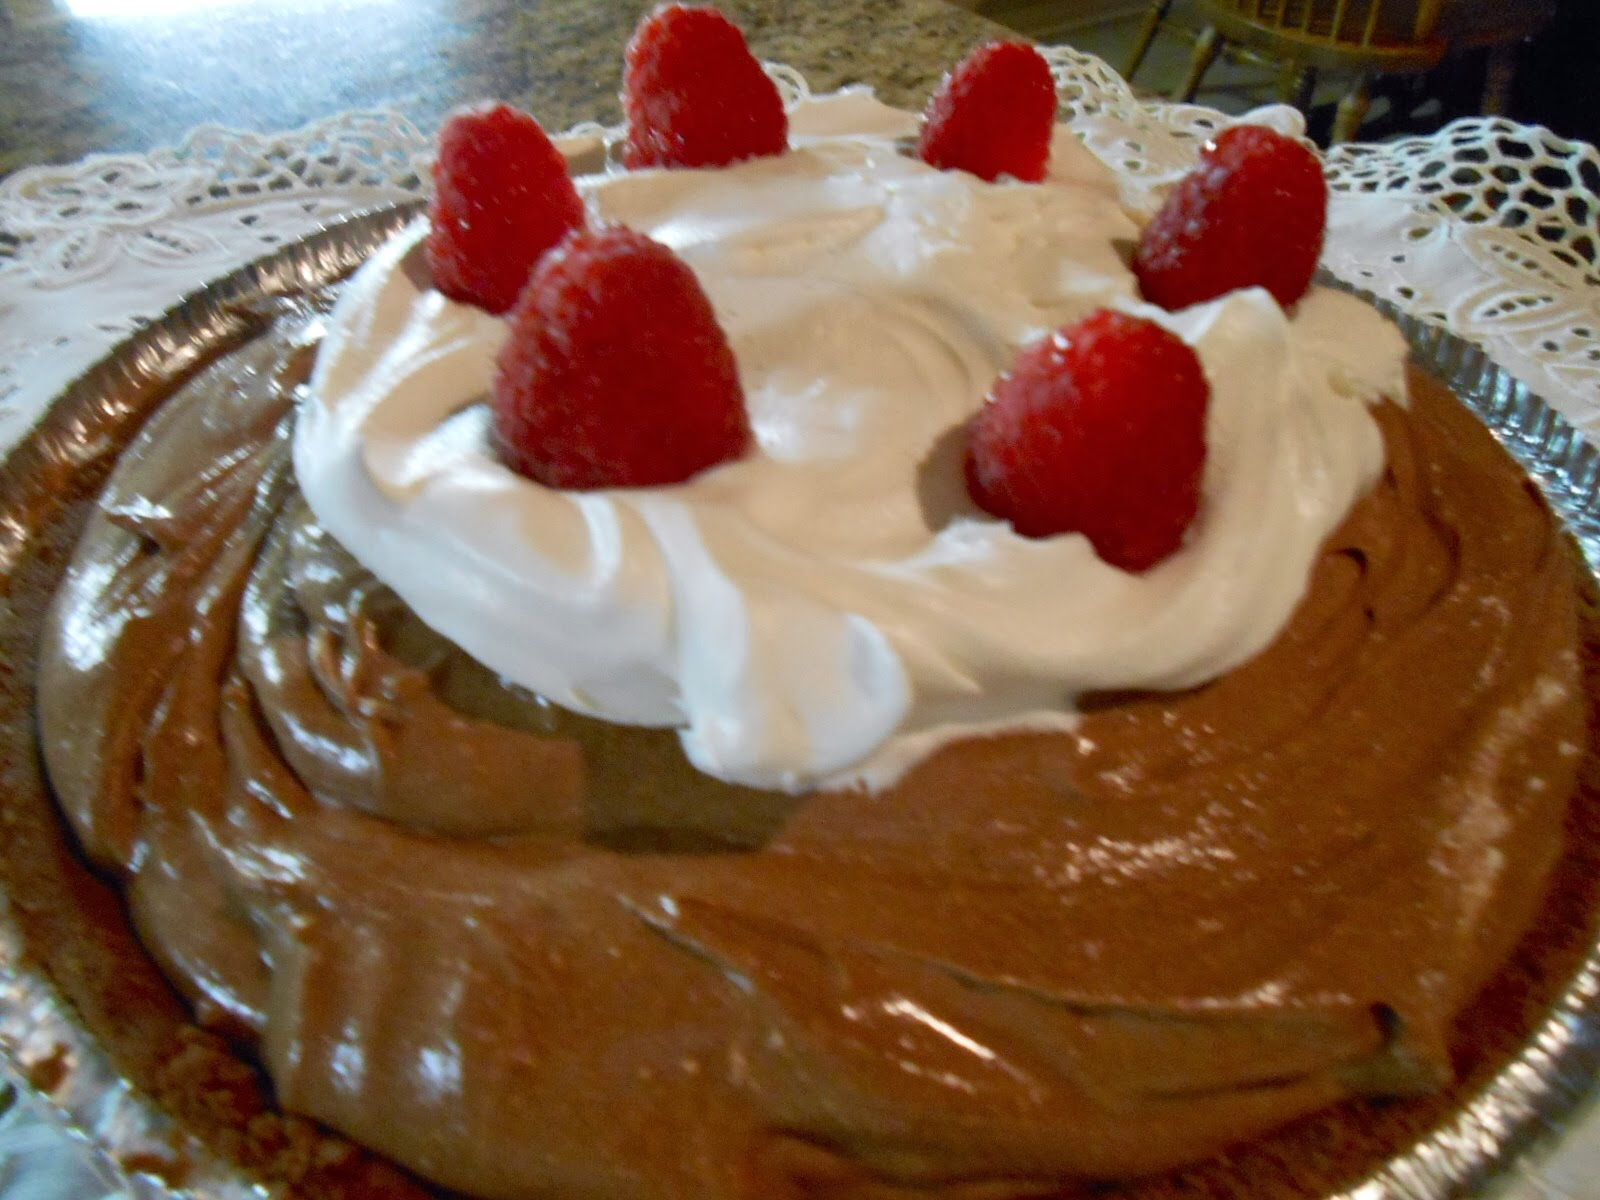 Kitty's Kozy Kitchen: Chocolate Raspberry Mousse Pie